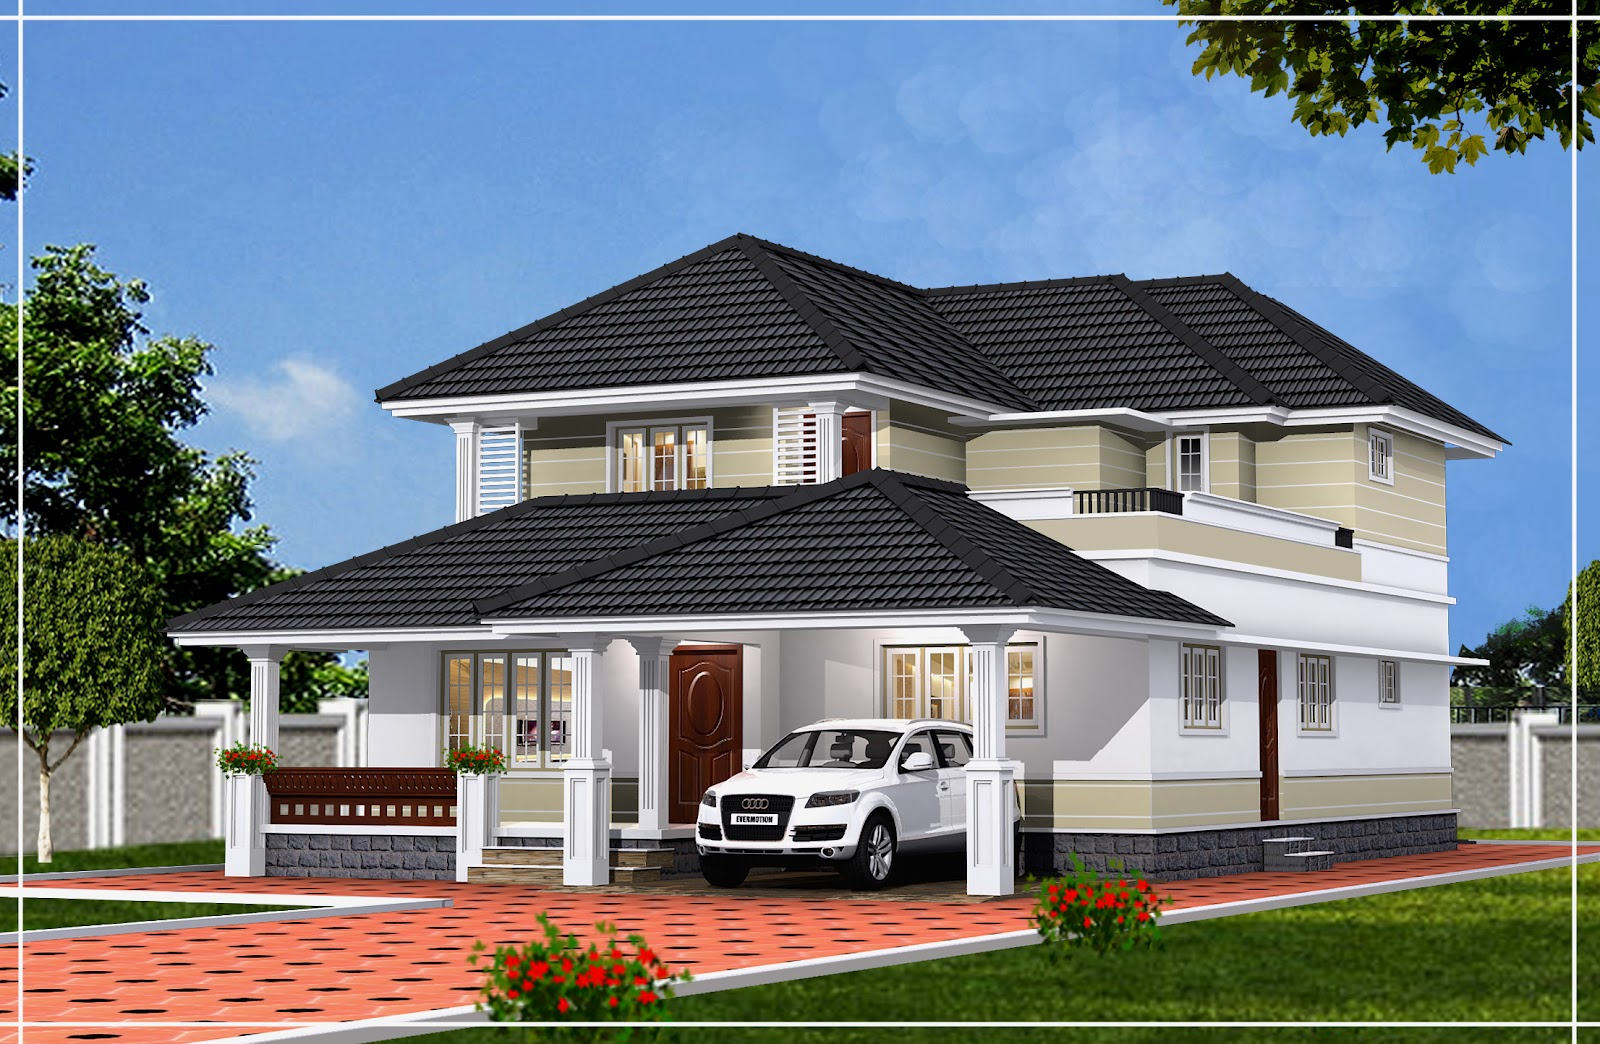 Friendsthiruvalla POSH HOUSE FOR SALE 2950 SQ FT AT PODIYADI